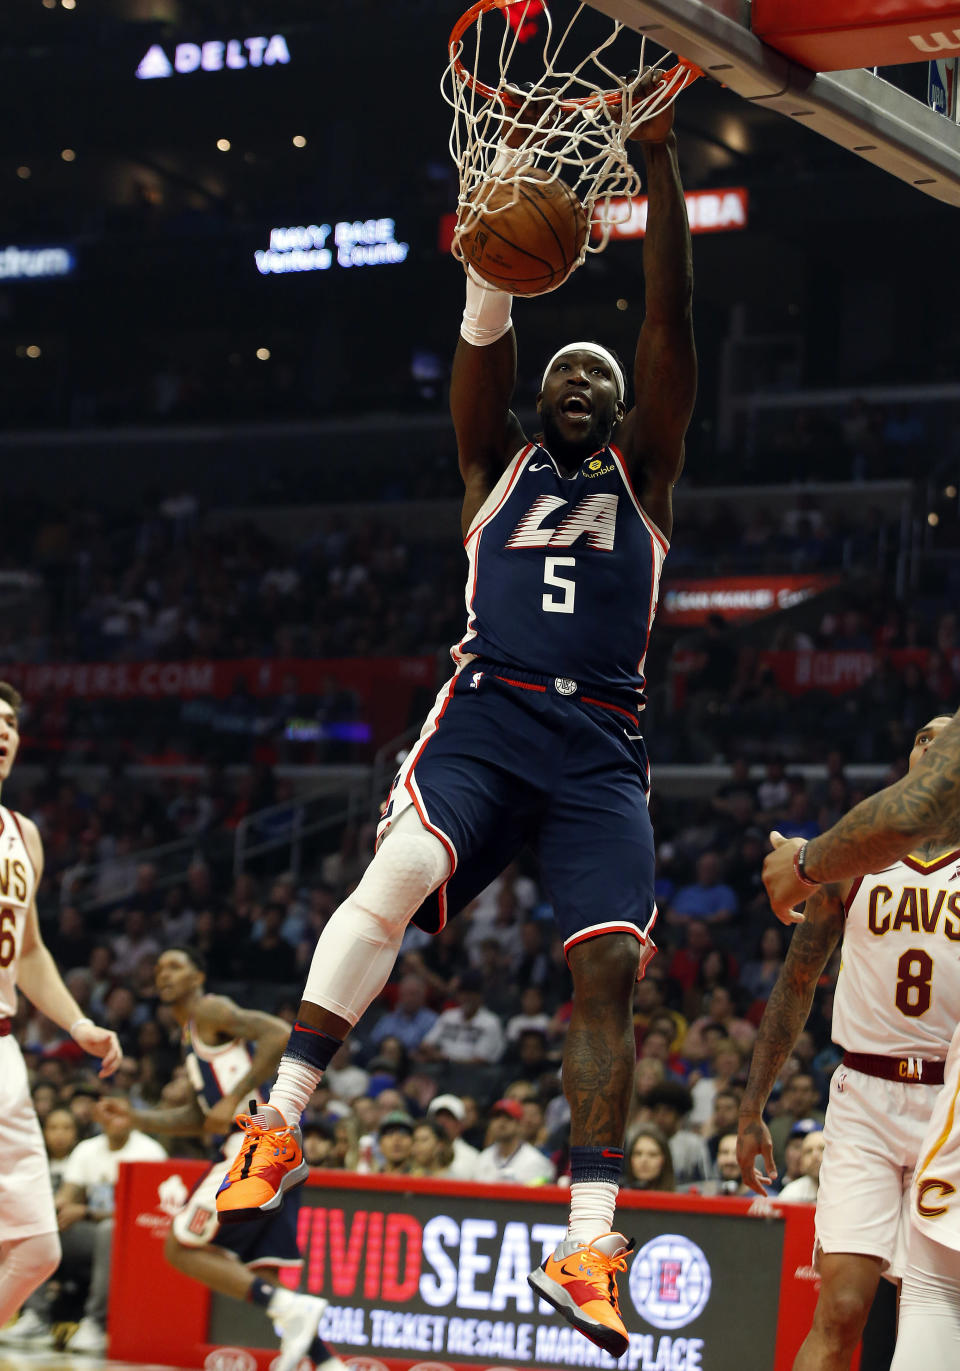 LOS ANGELES, CA - MARCH 30: Los Angeles Clippers center Montrezl Harrell (5) dunks the ball during the game against the Cleveland Cavaliers on March 30, 2019, at Staples Center in Los Angeles, CA. (Photo by Adam Davis/Icon Sportswire via Getty Images)